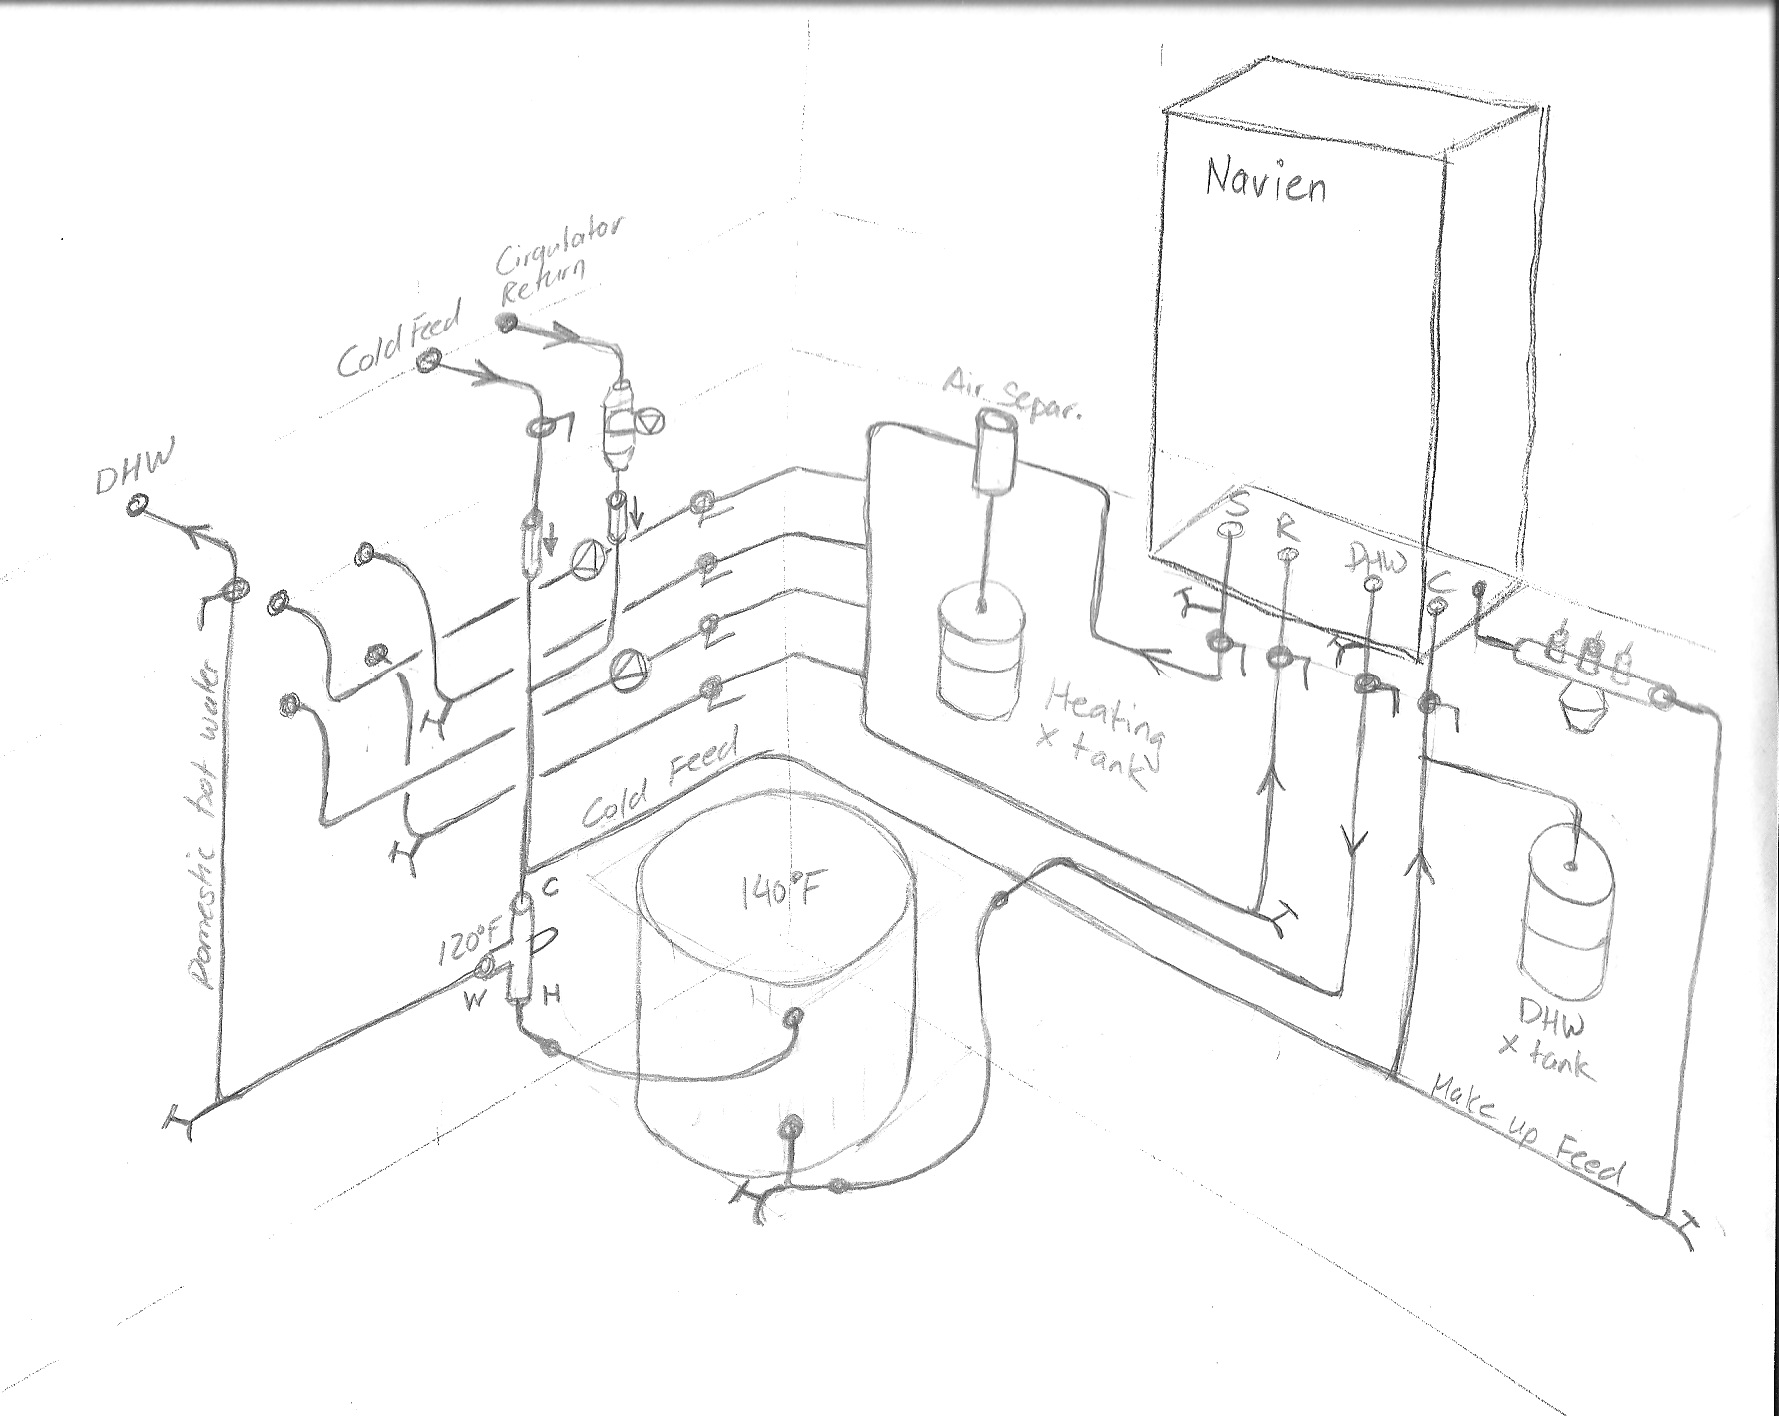 33 Navien Combi Boiler Piping Diagram